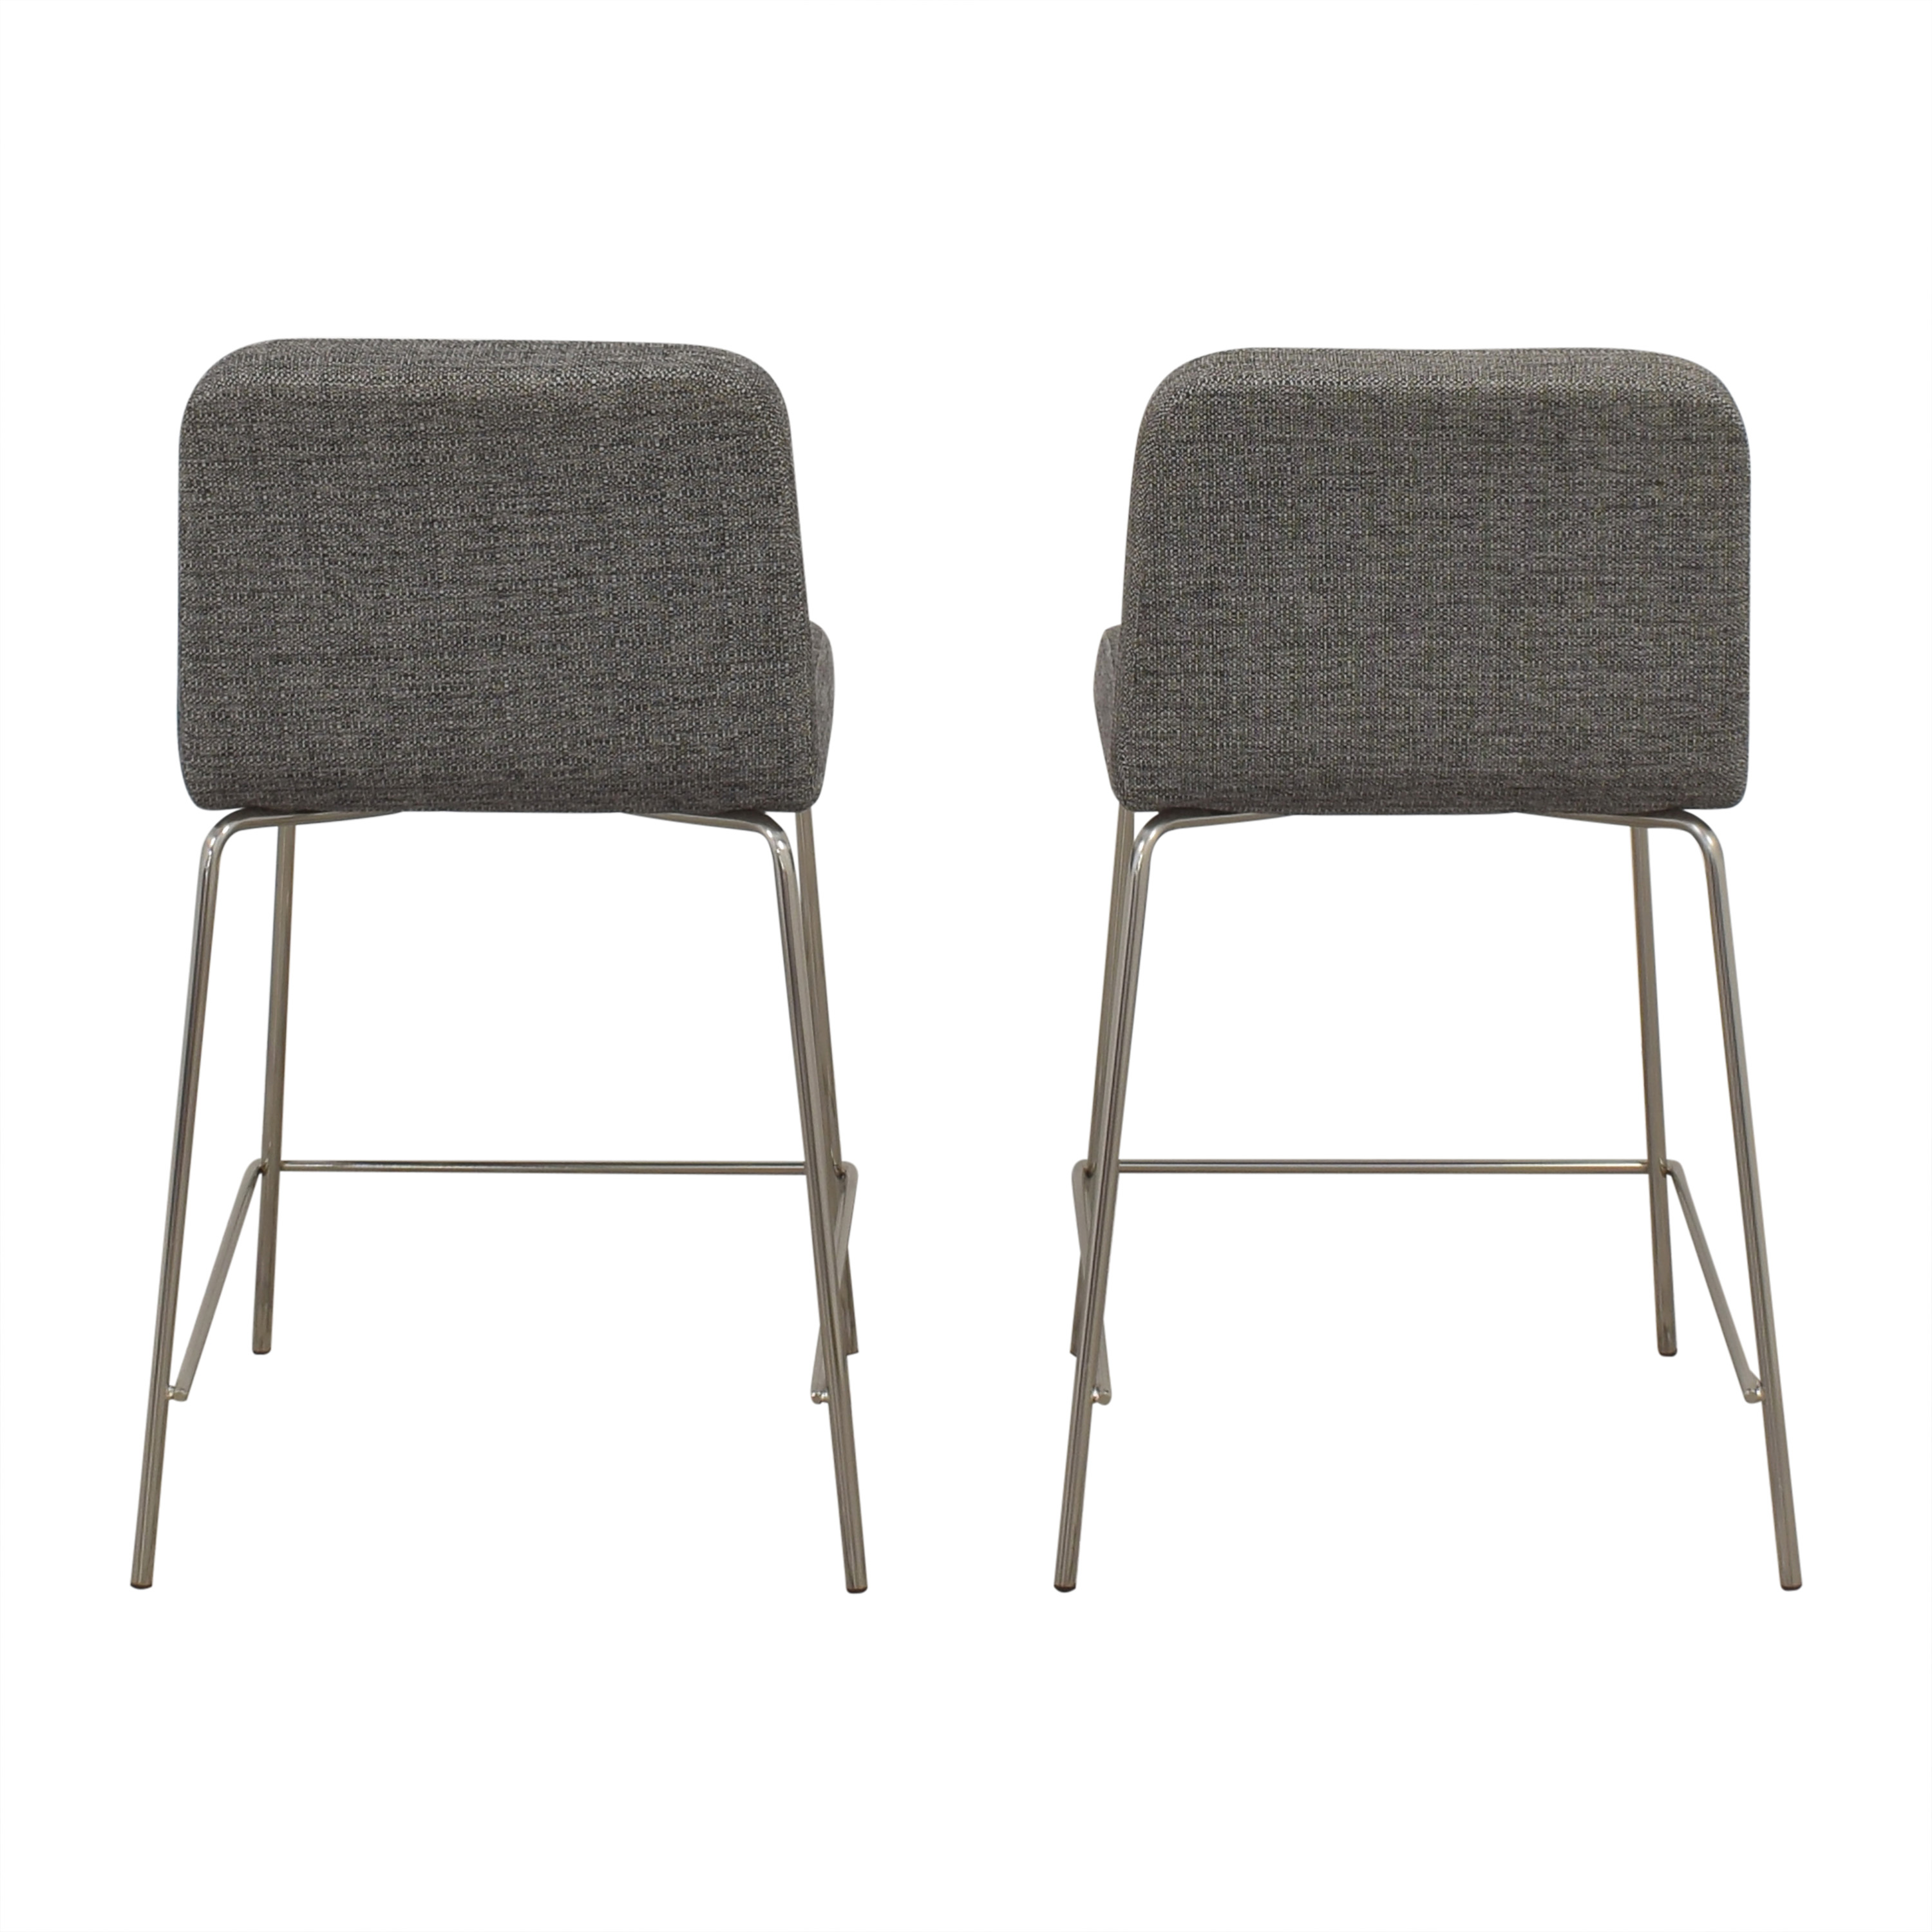 CB2 CB2 Charlie Counter Stools price